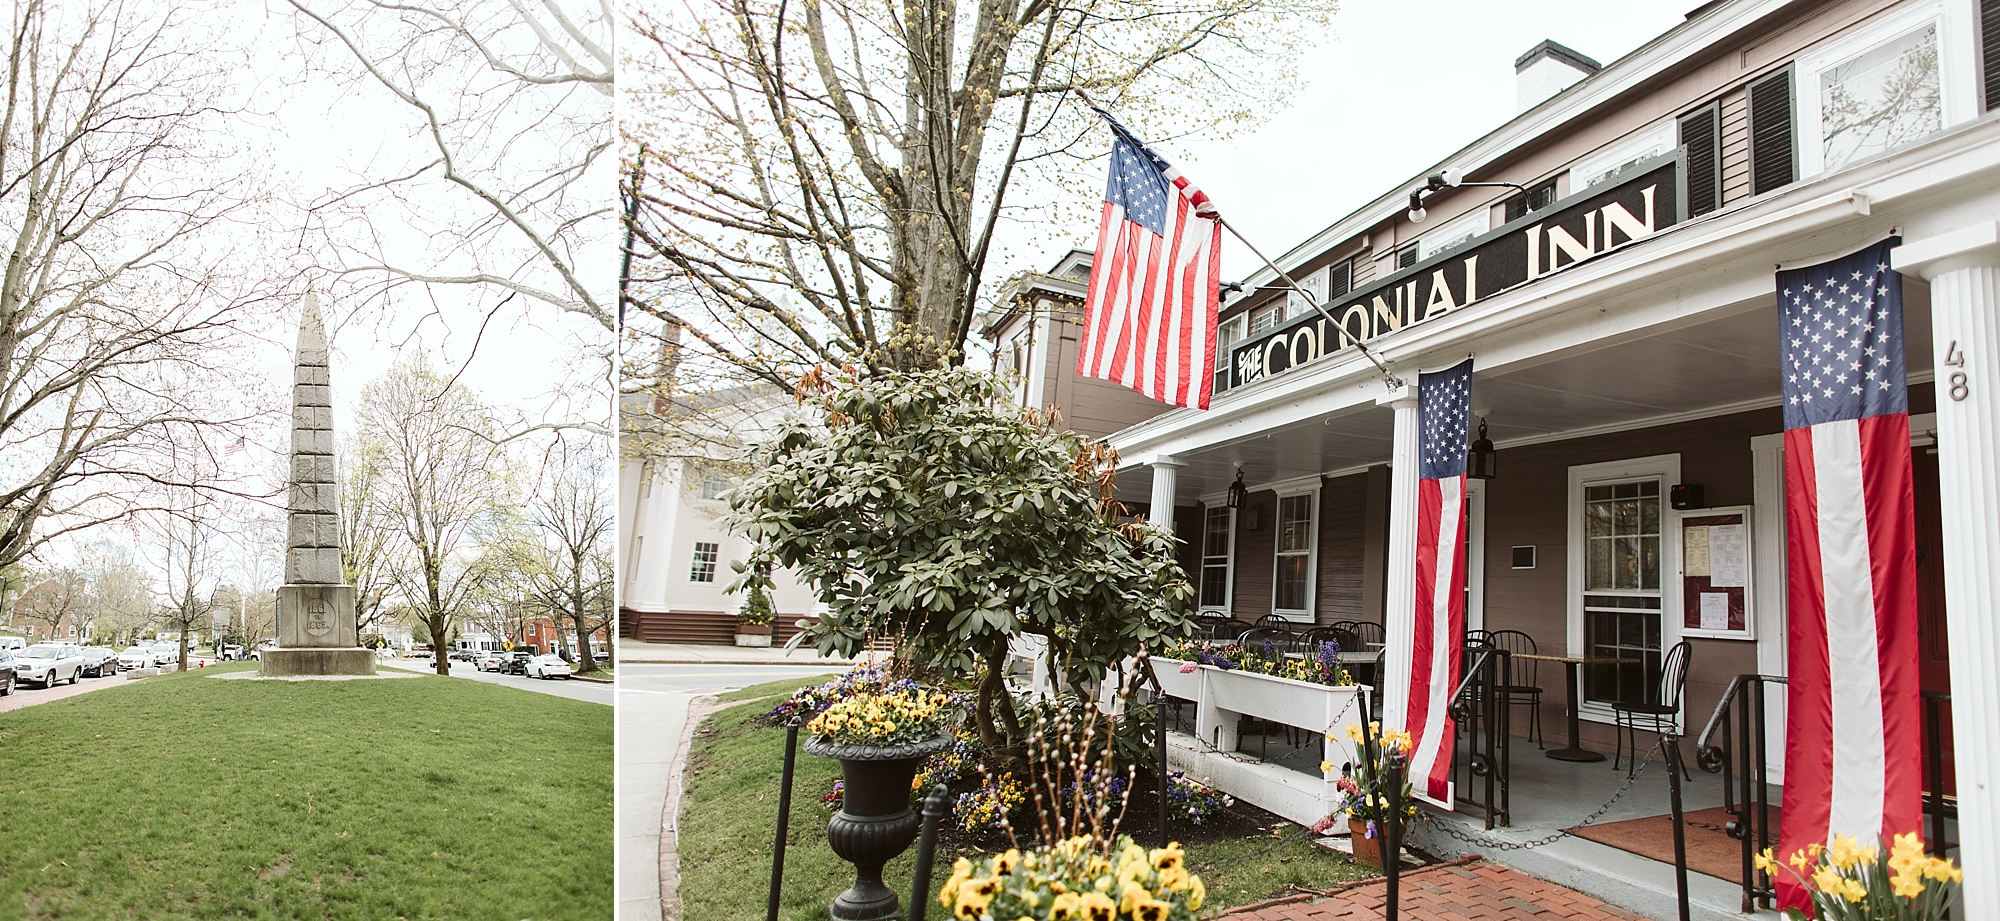 Concord's Colonial Inn located in Monument Square